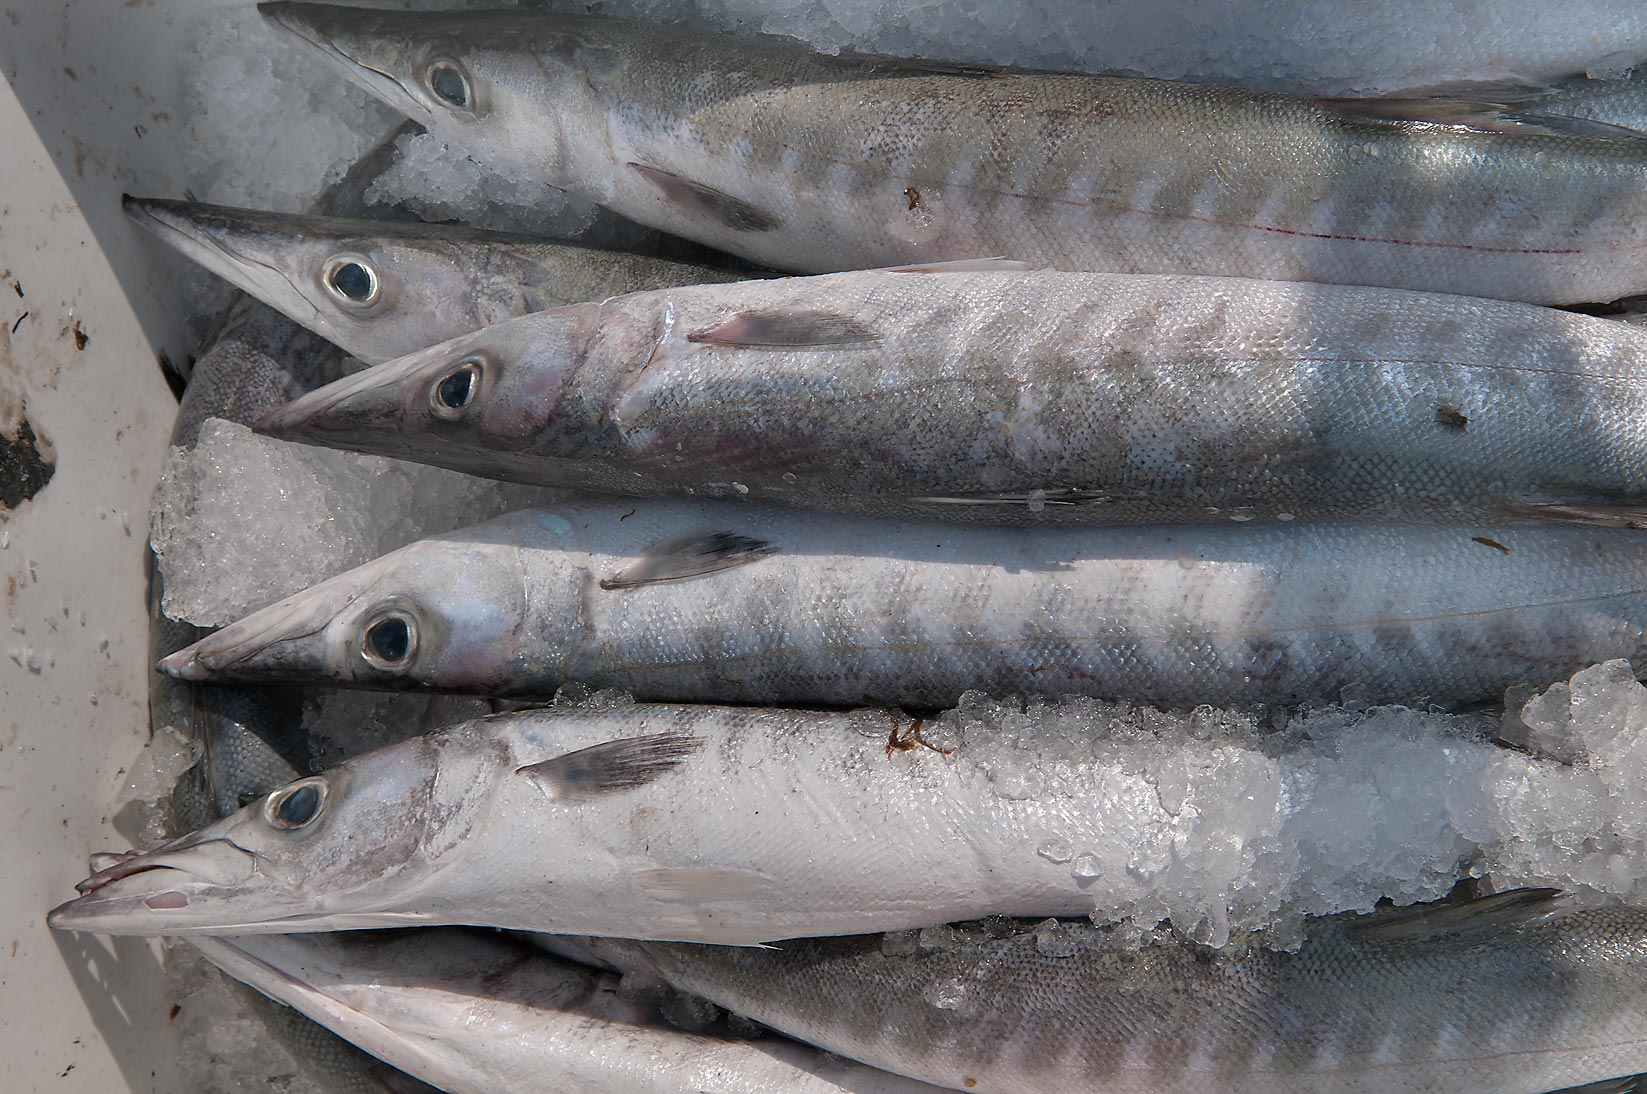 Barracuda fish market search in pictures for Barracuda fish for sale